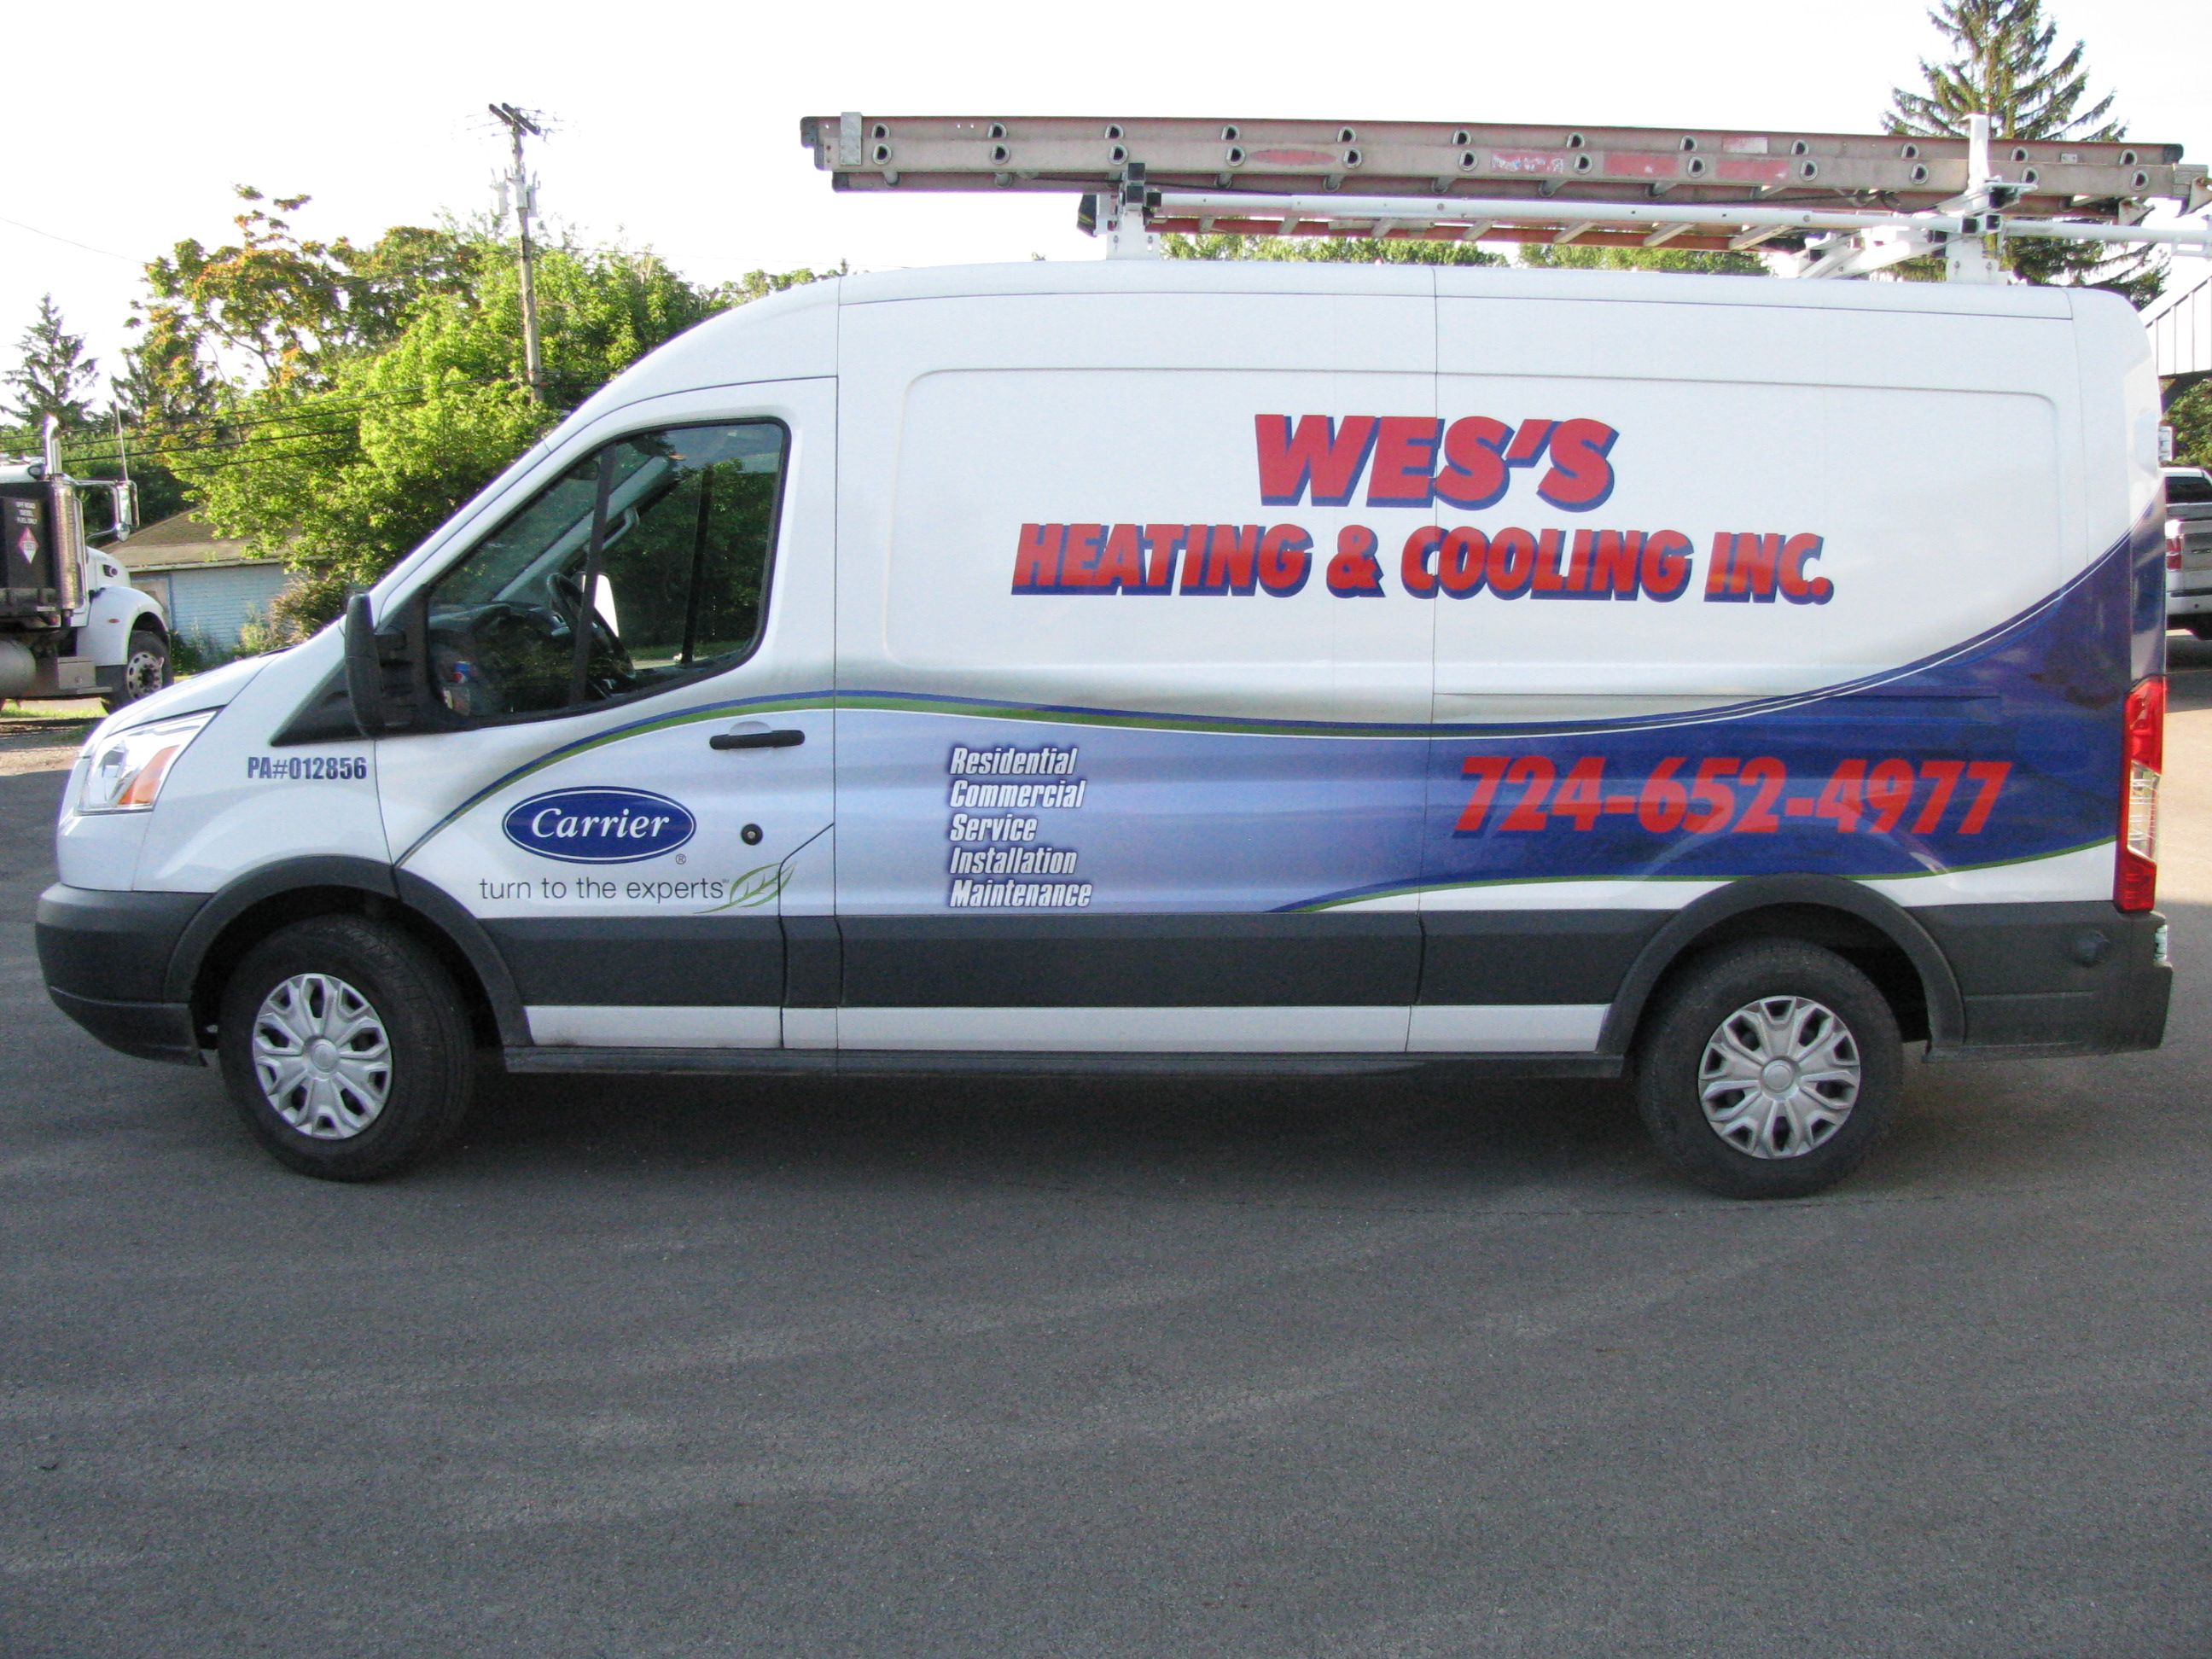 Wes's Heating & Cooling image 0